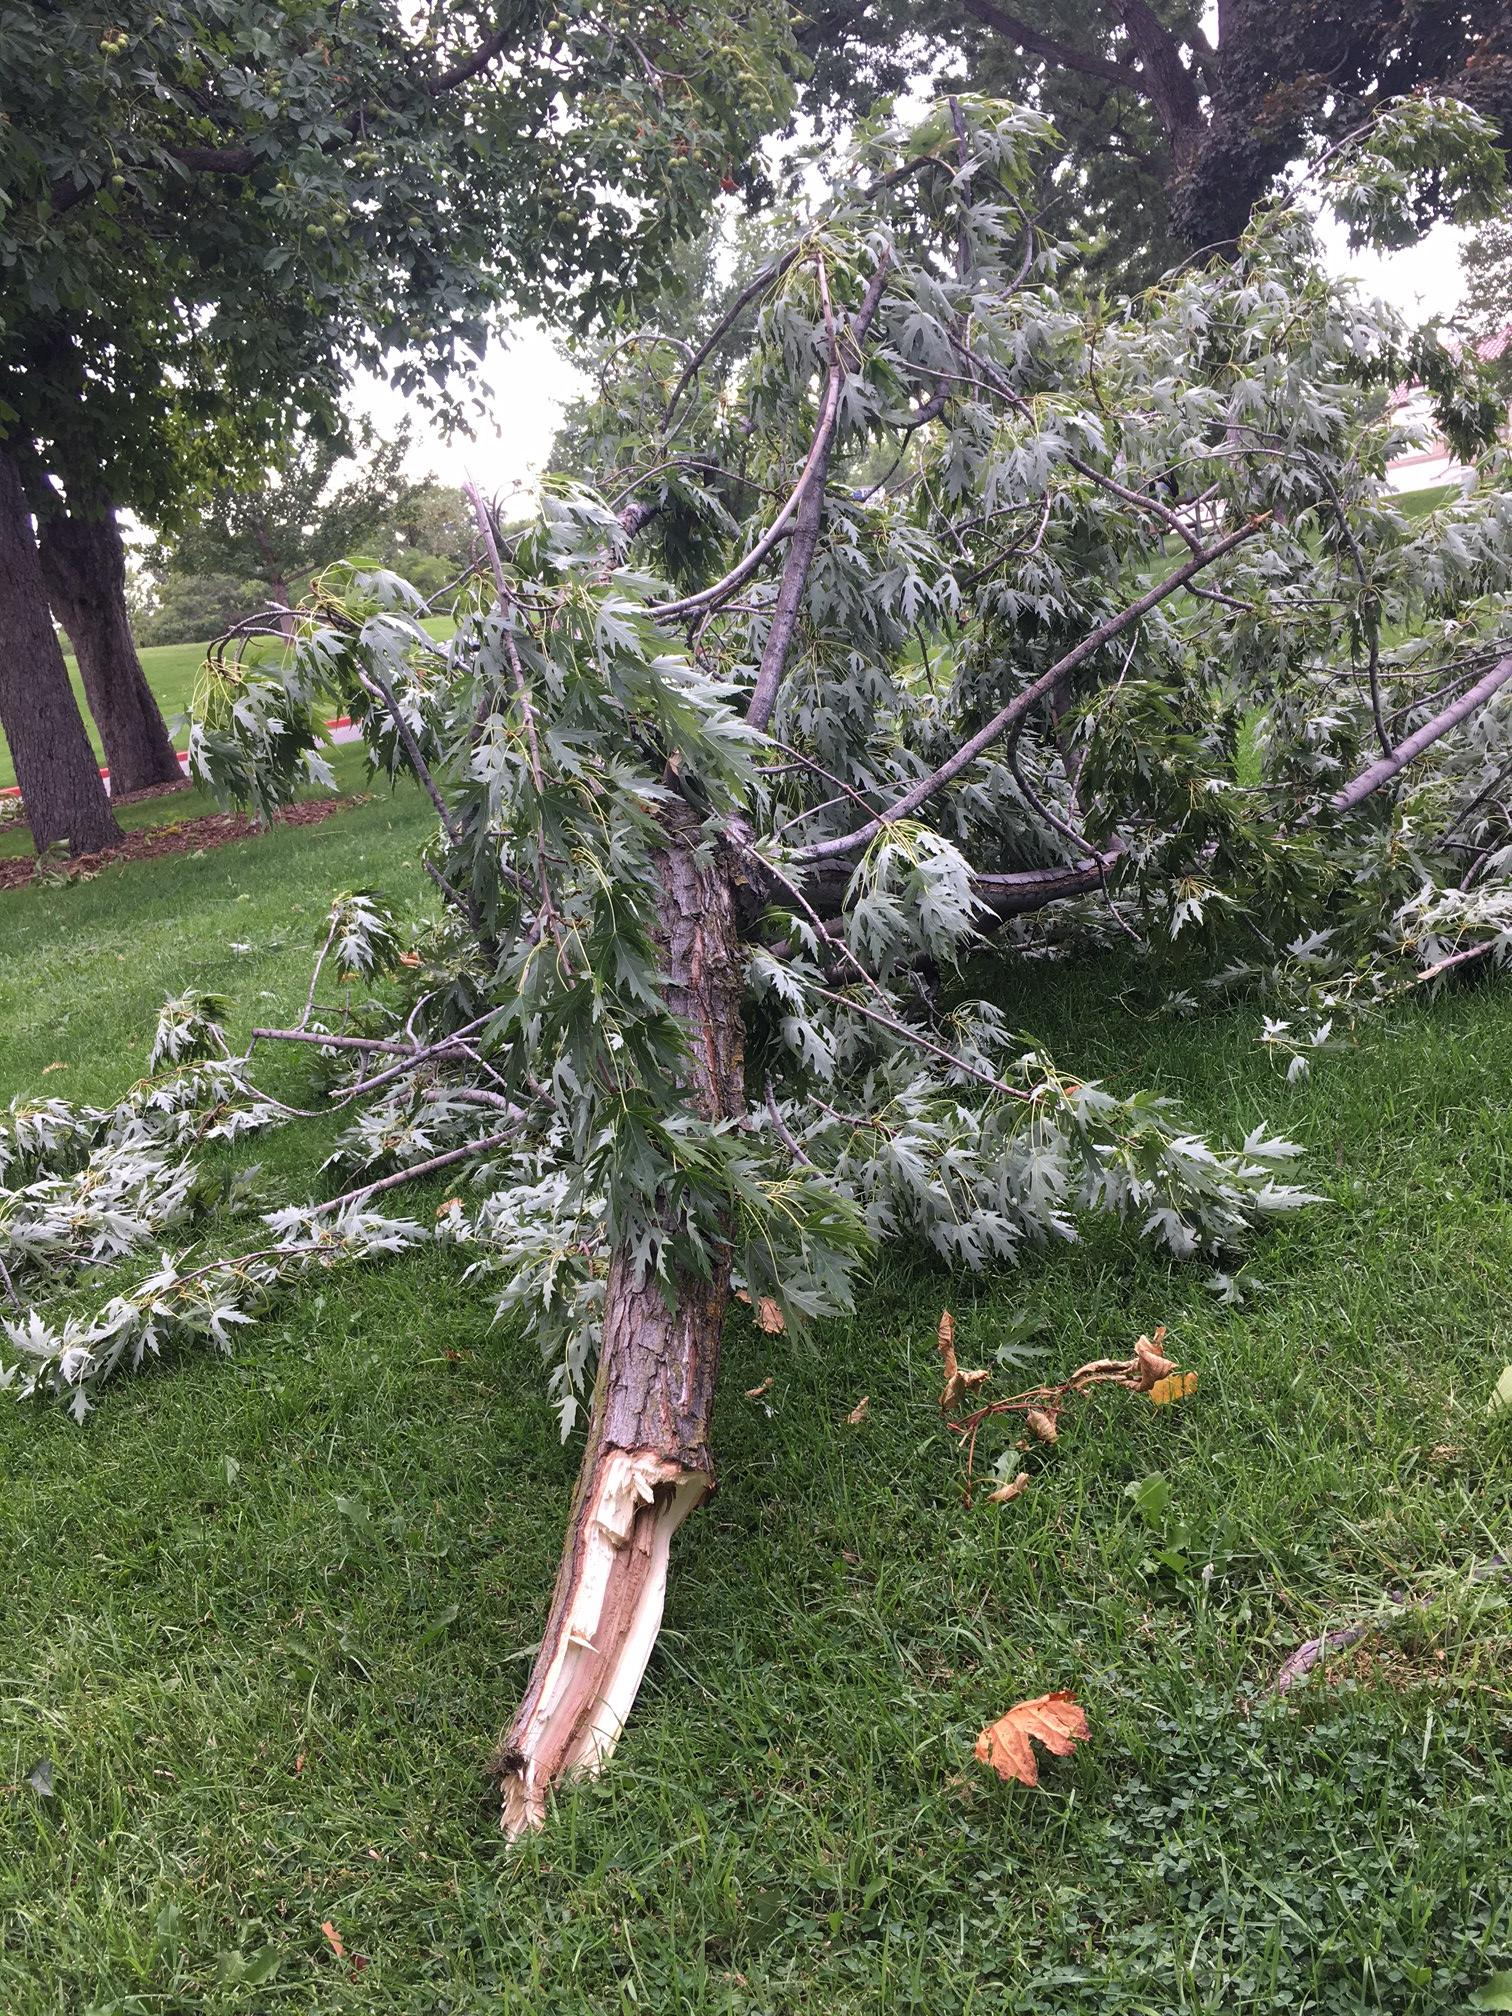 A severe thunderstorm that rolled through Wednesday afternoon knocked down trees and branches at the Boise Depot. KBOI Photos.